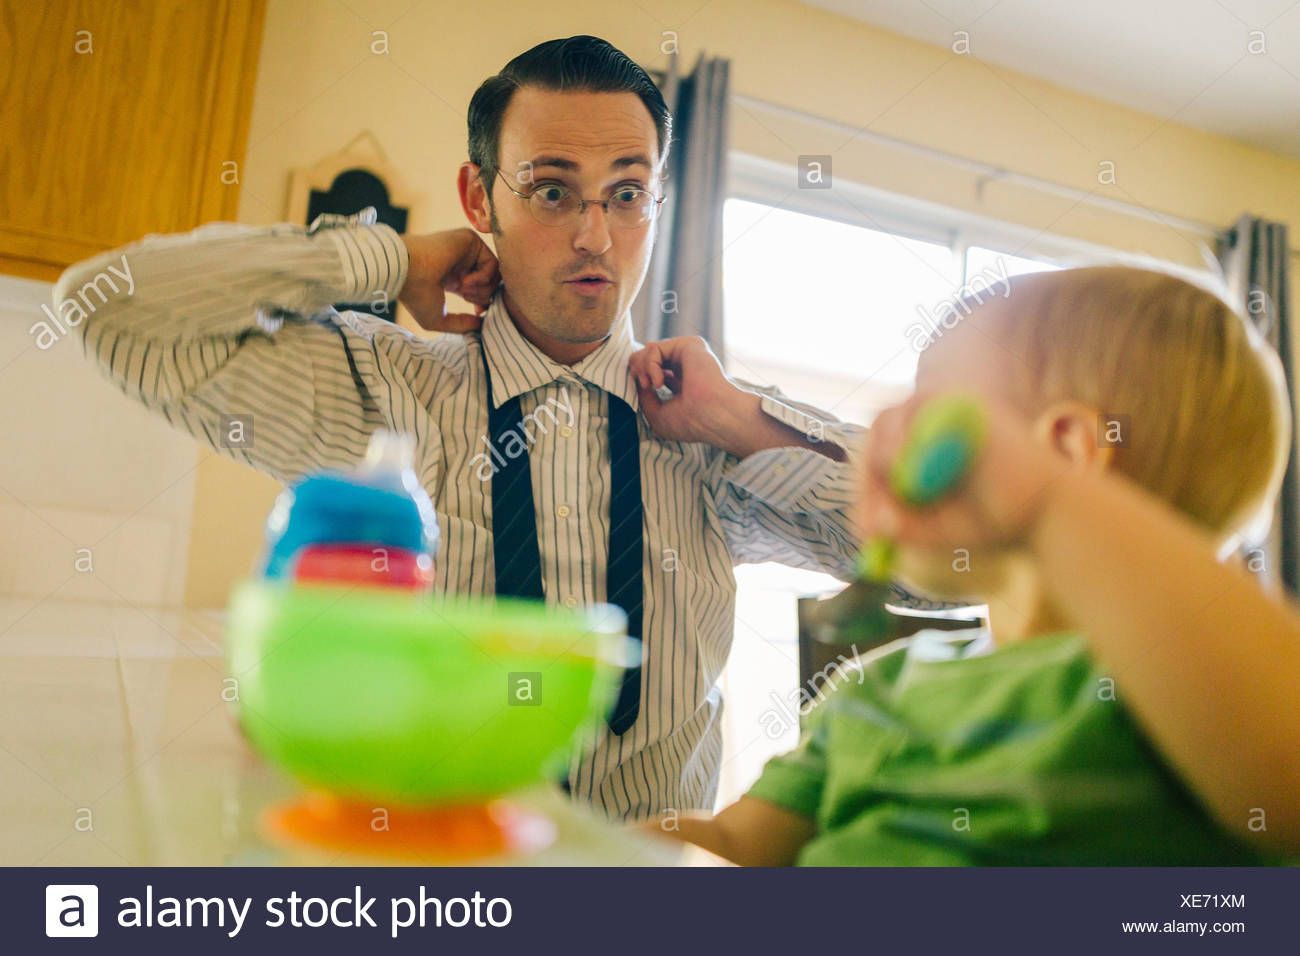 Father and young son in kitchen, father putting on neck tie whilst son eats breakfast - Stock Image